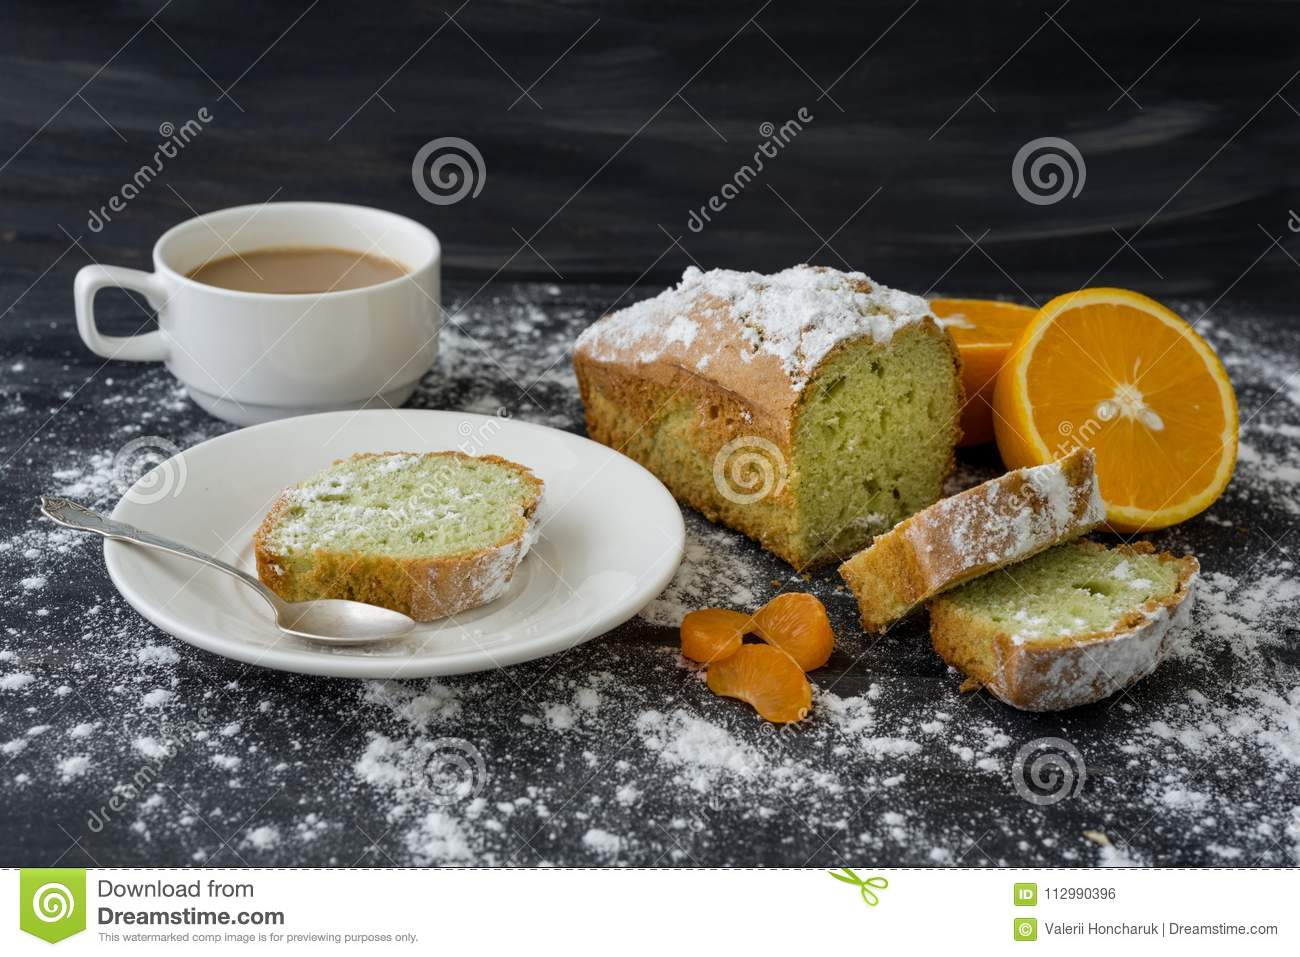 Mint cake sprinkled with powdered sugar on dark surface with fresh oranges mandarins